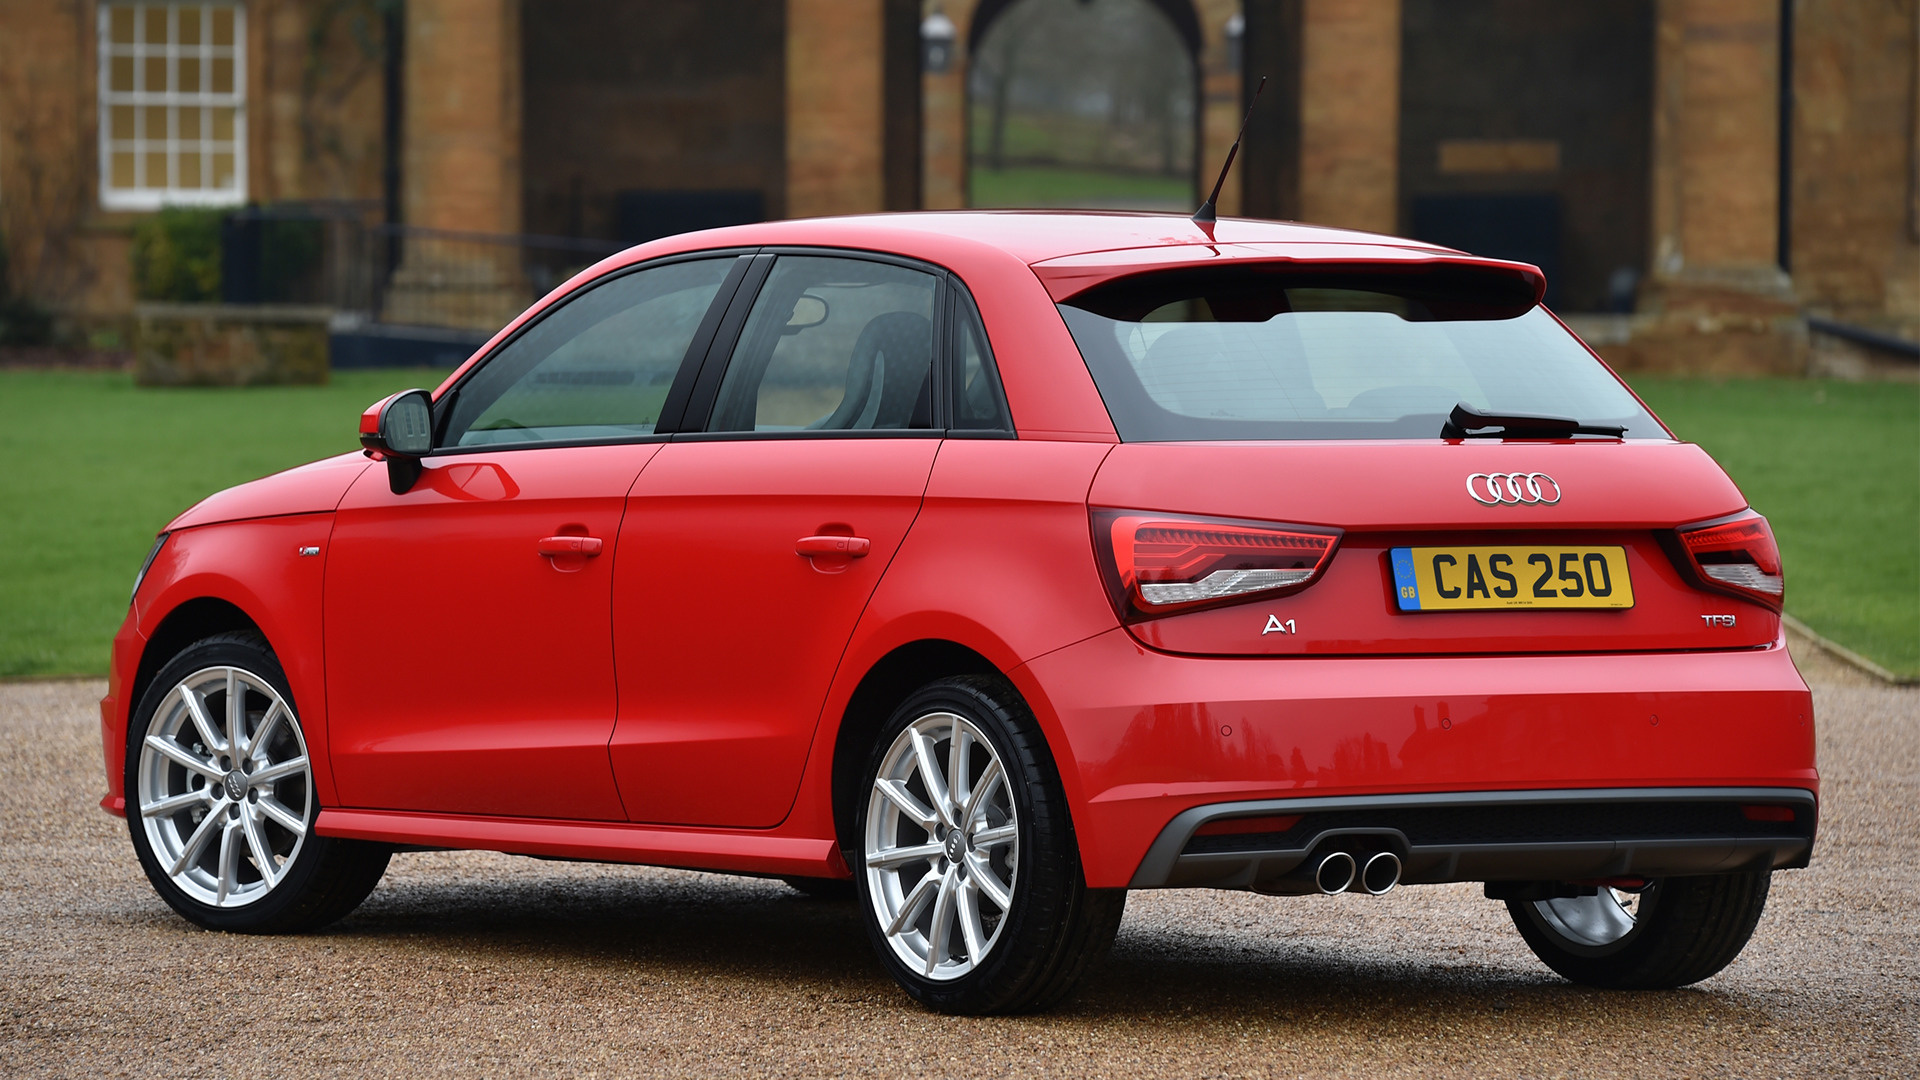 2014 audi a1 sportback s line uk wallpapers and hd. Black Bedroom Furniture Sets. Home Design Ideas